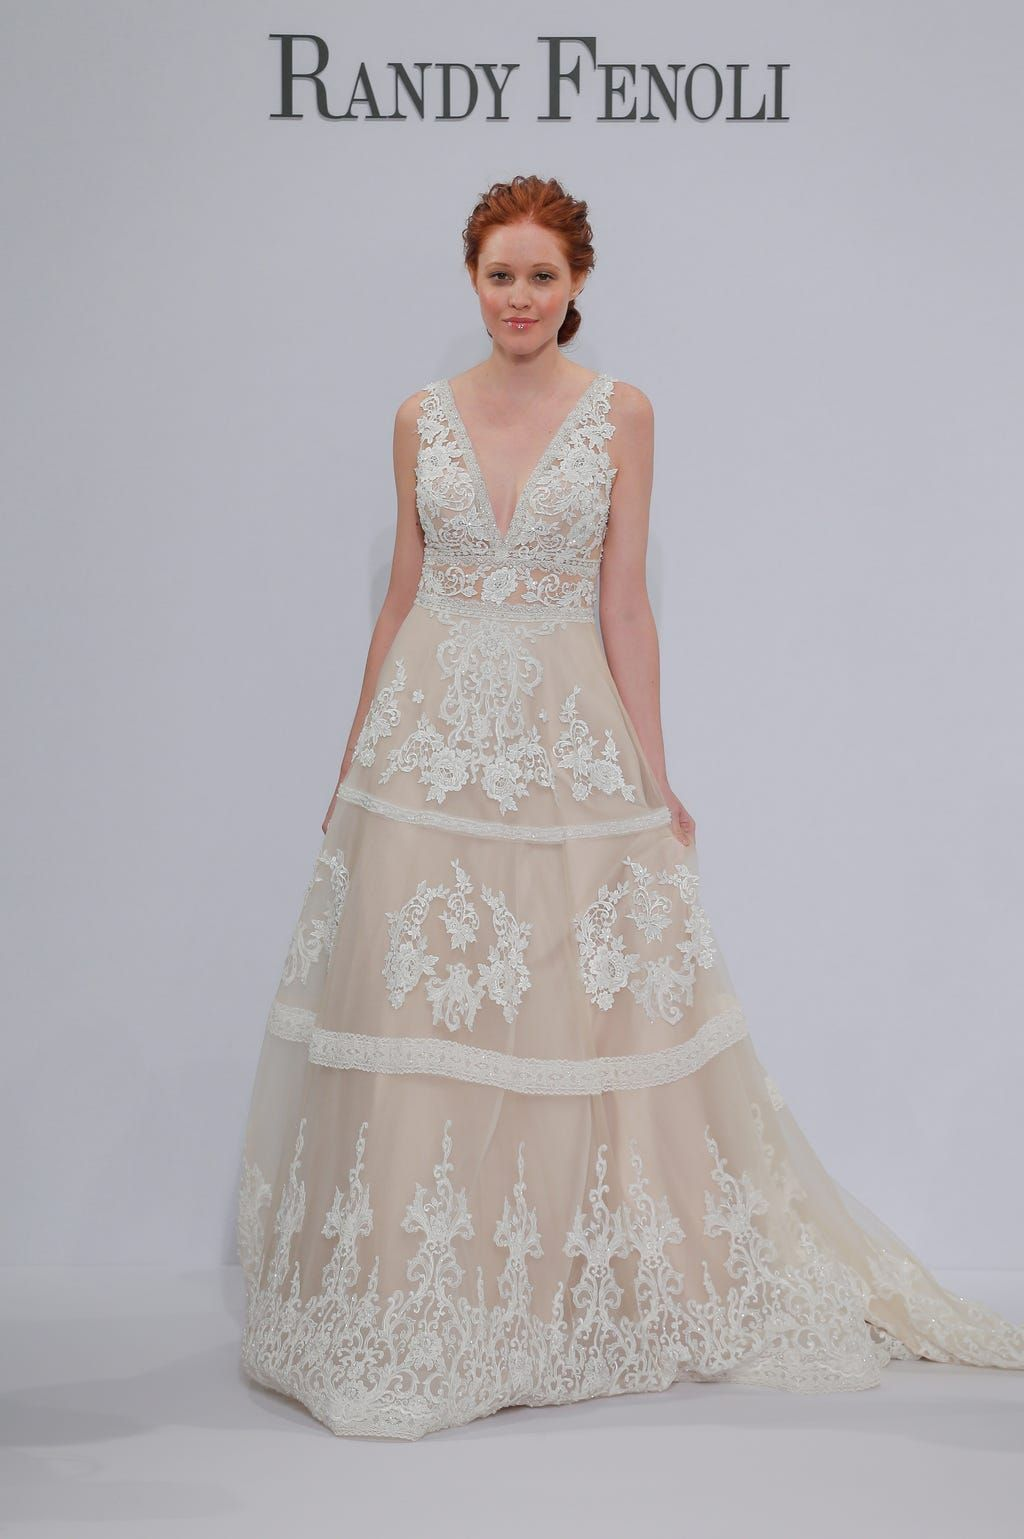 You Can Now Buy A Wedding Gown Designed By This Say Yes To The Dress Star In 2020 Dresses Yes To The Dress Kleinfeld Bridal